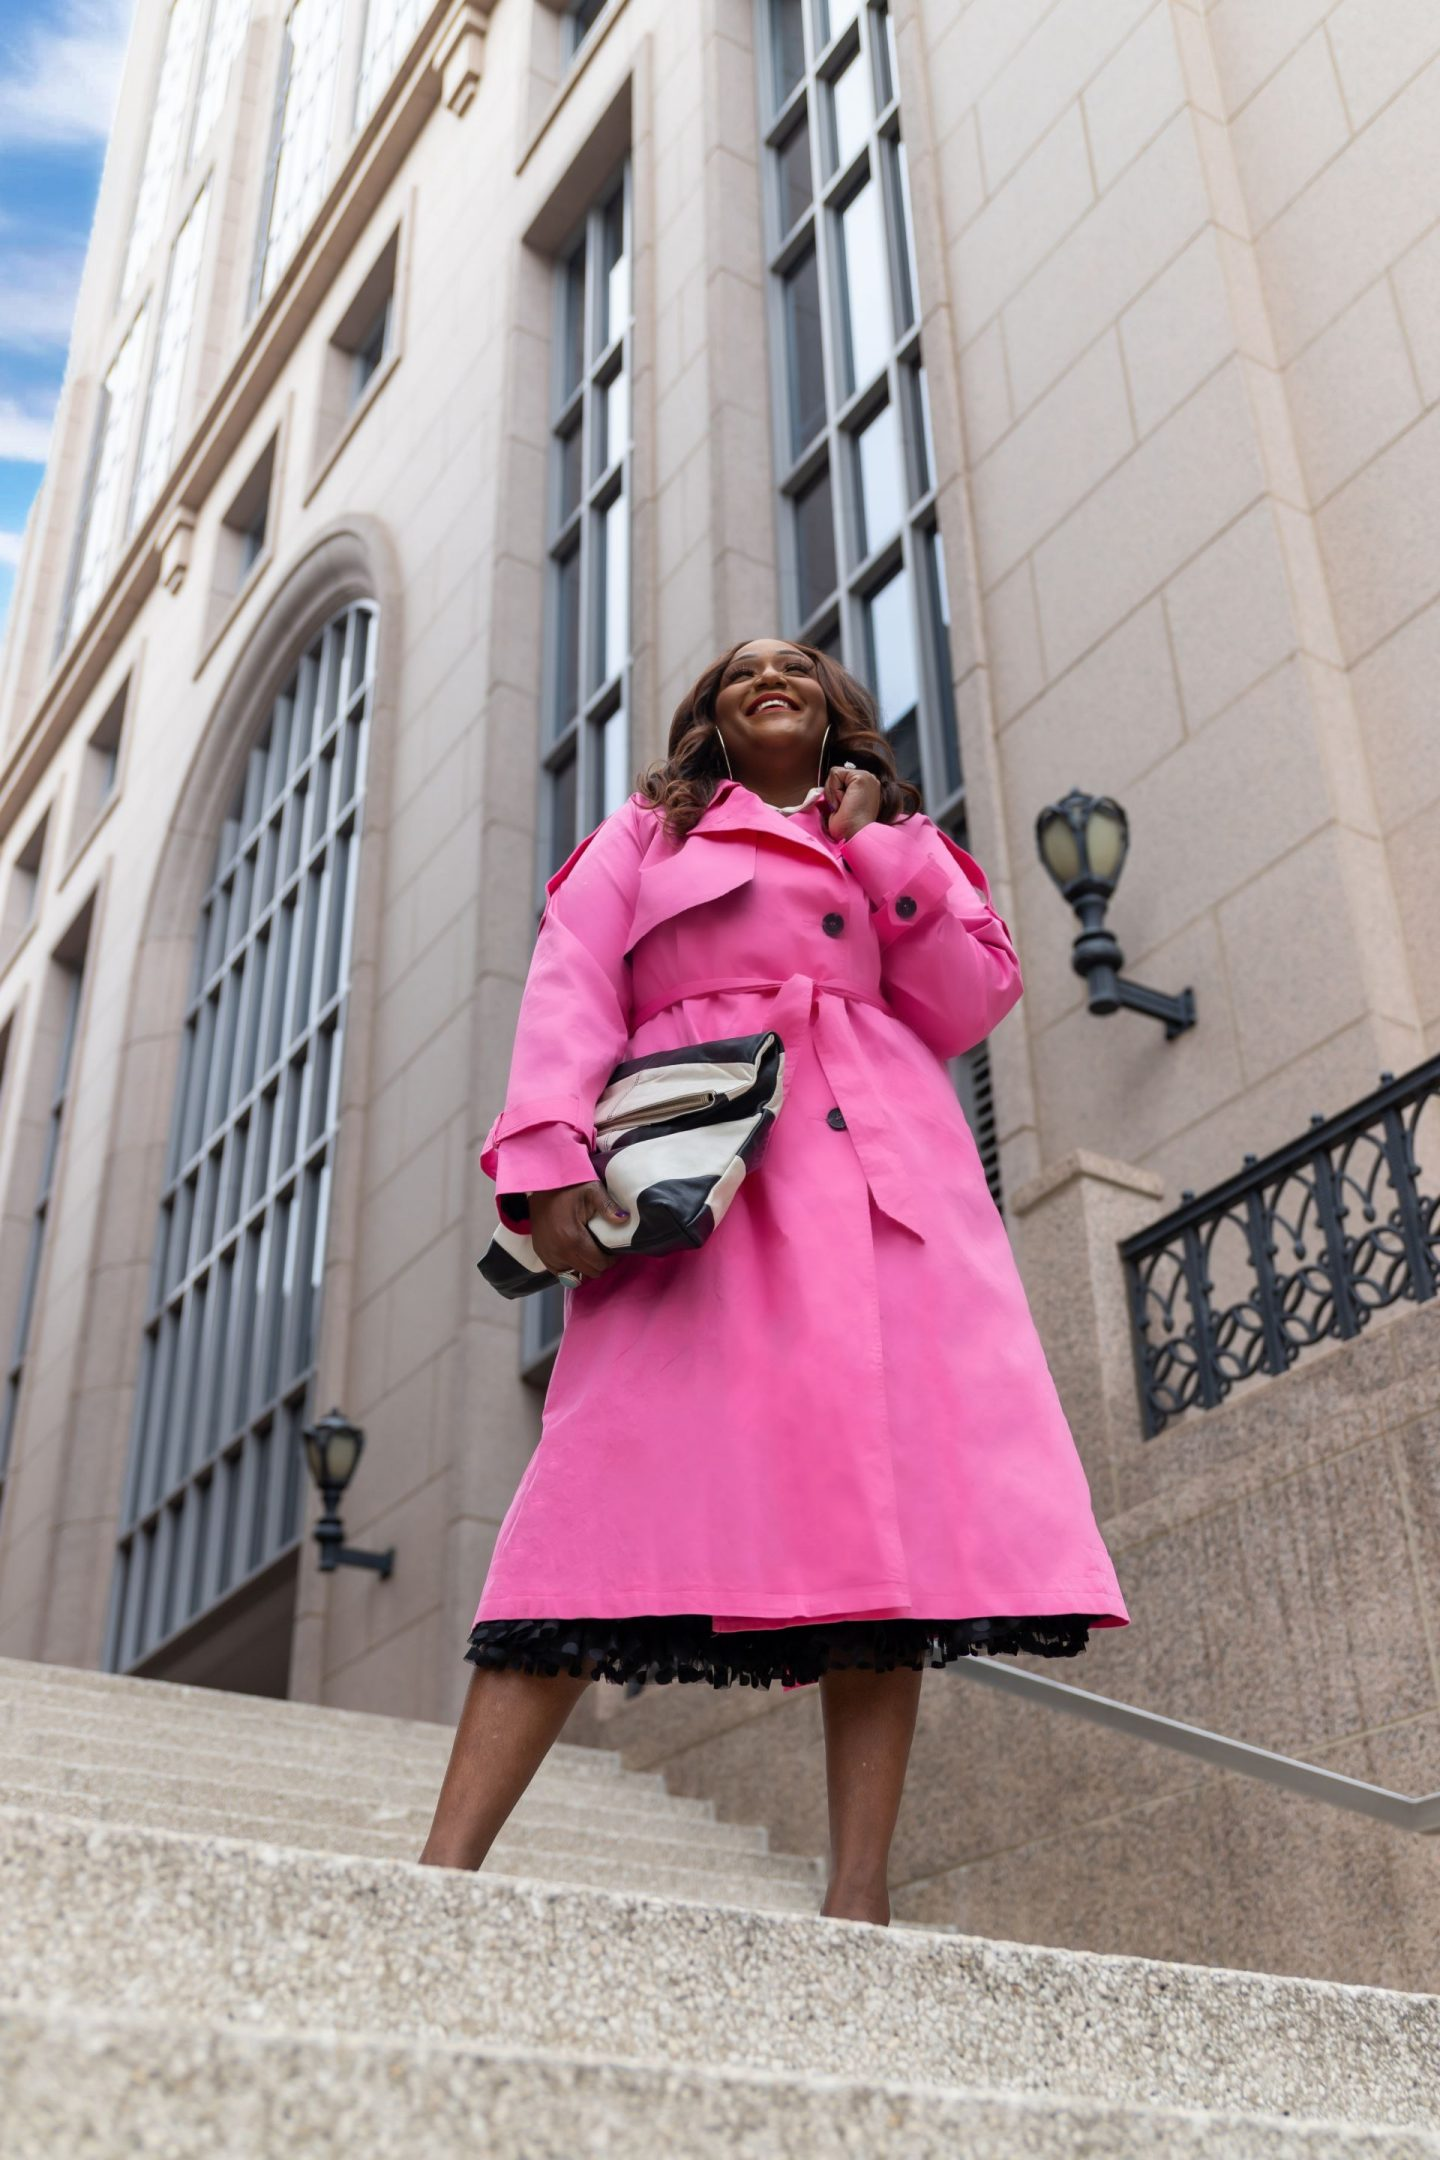 Influencer Nikki Free standing on stairs wearing a pink trench coat holding black and white clutch bag